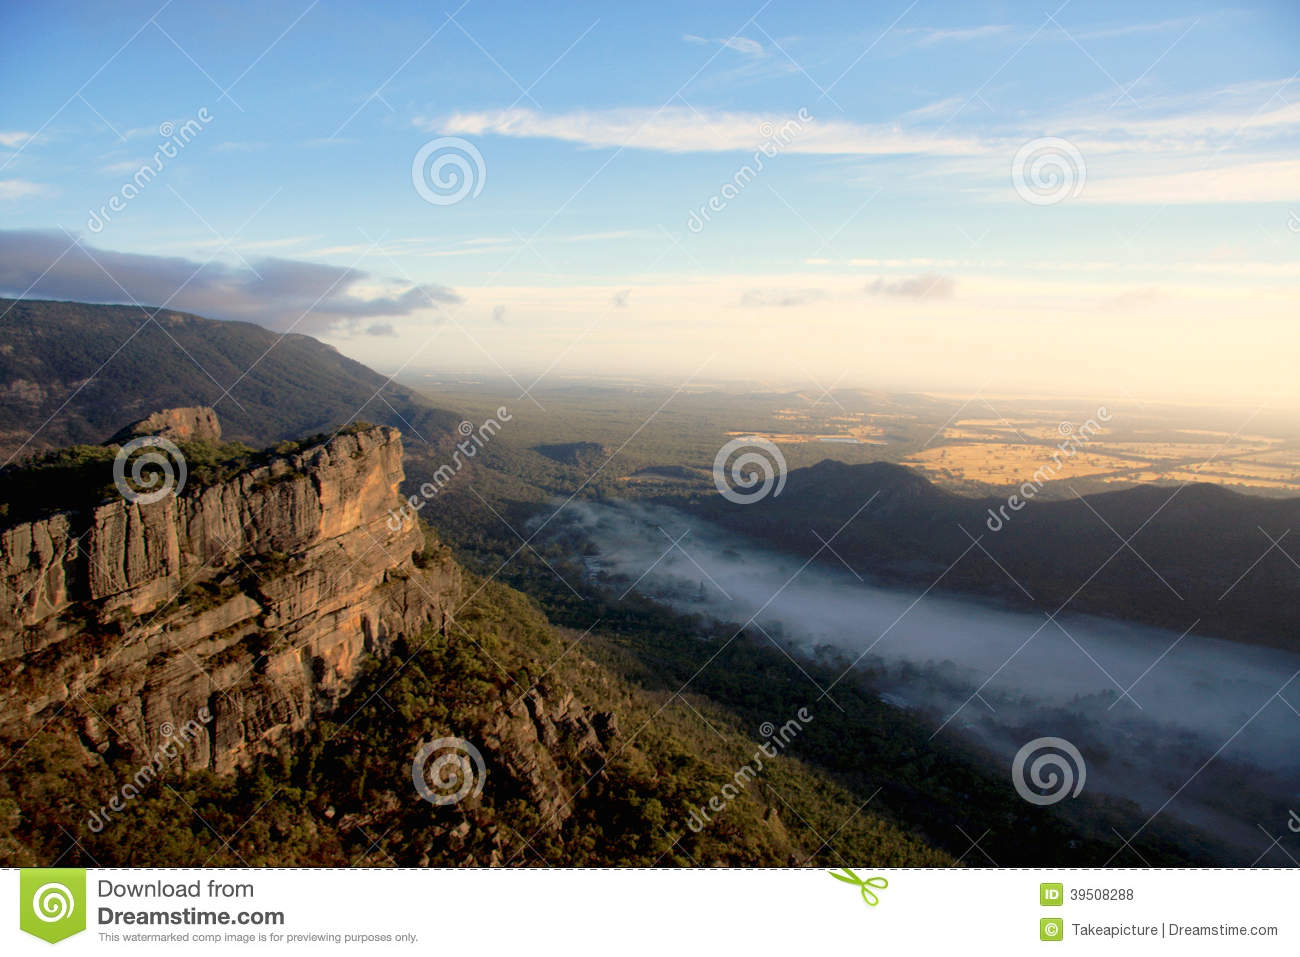 A view of the Grampians